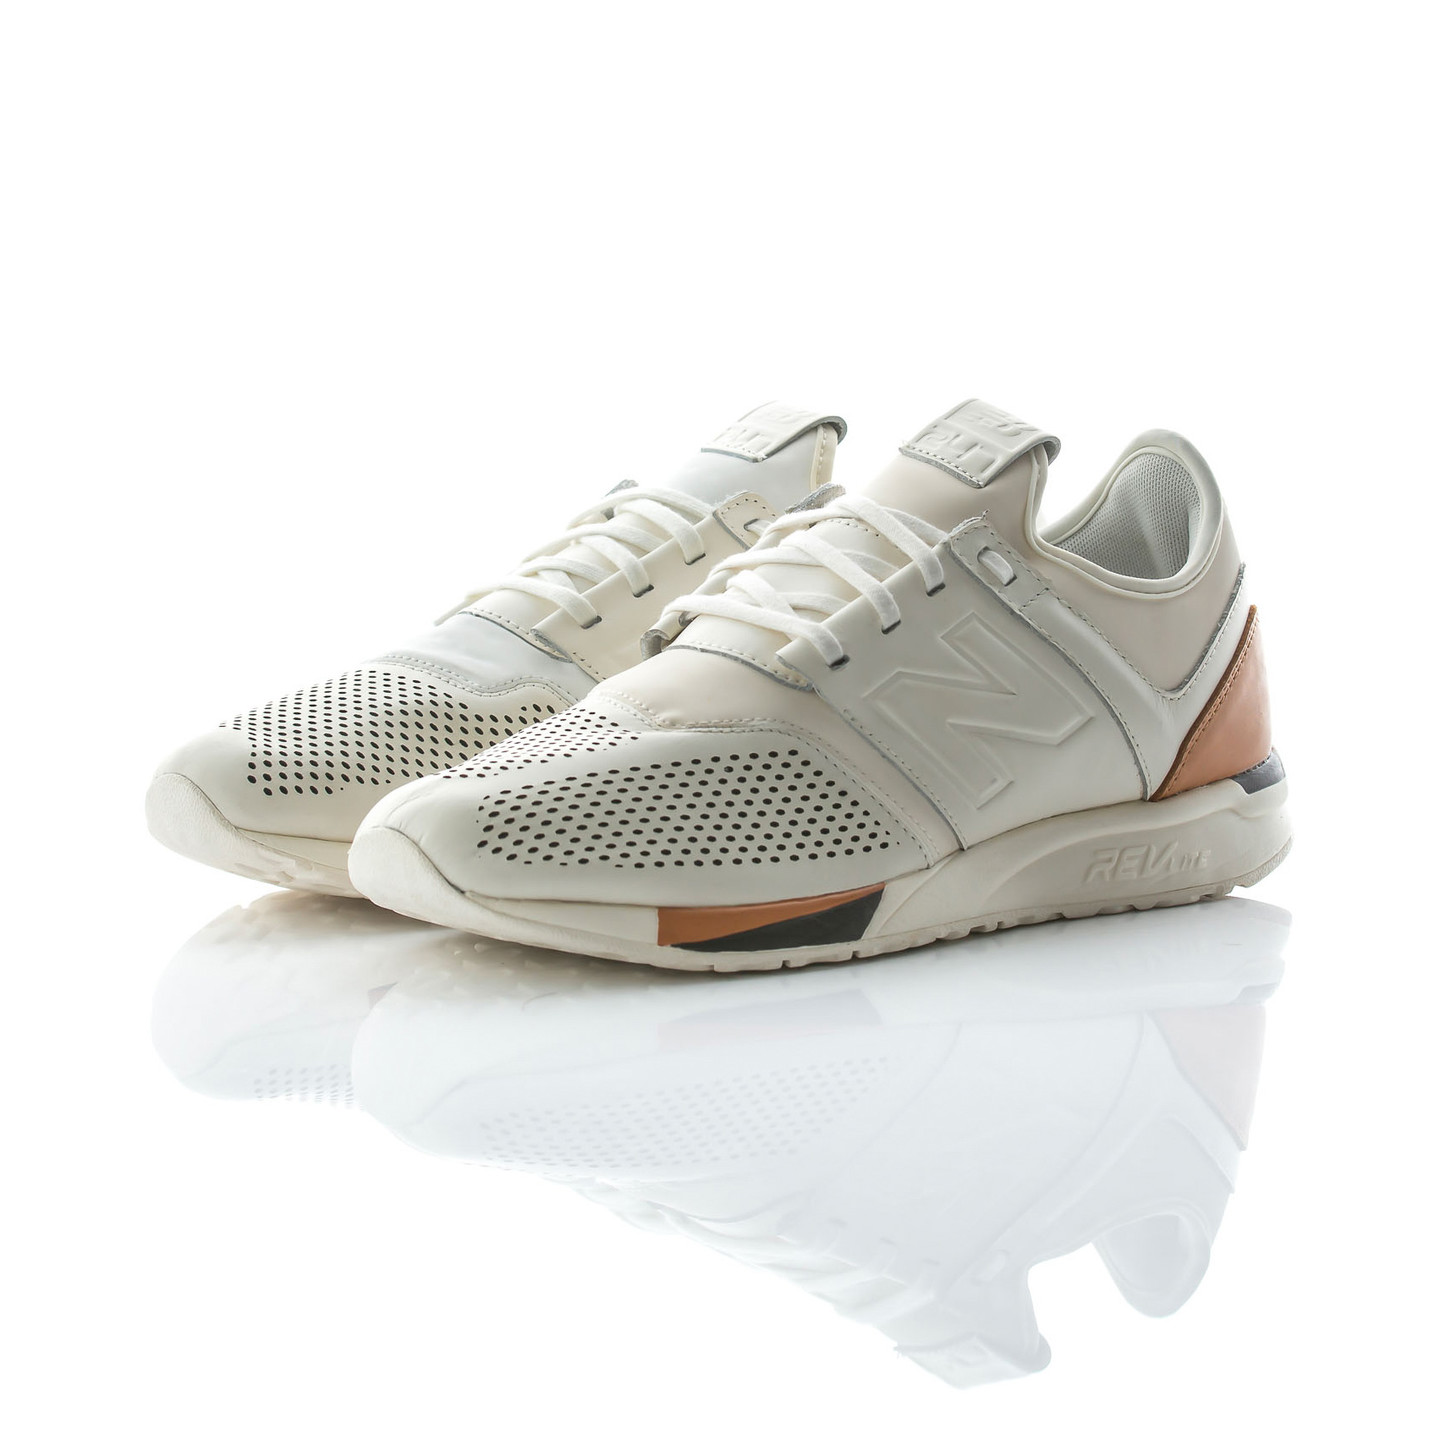 New Balance MRL 247 'Luxe Pack' Off White / Brown MRL247BE